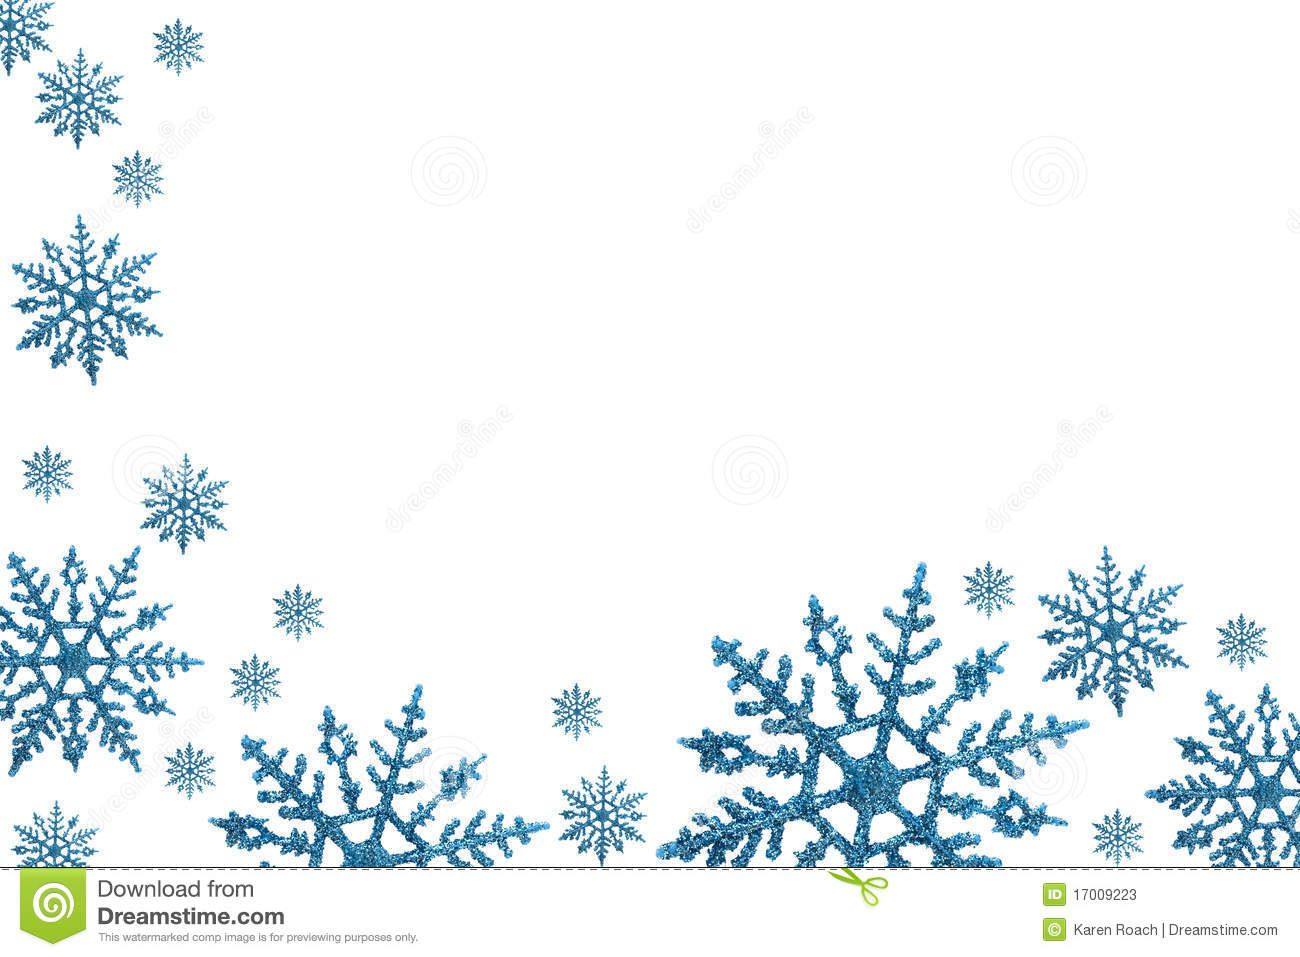 Snow borders clipart 2 » Clipart Station.